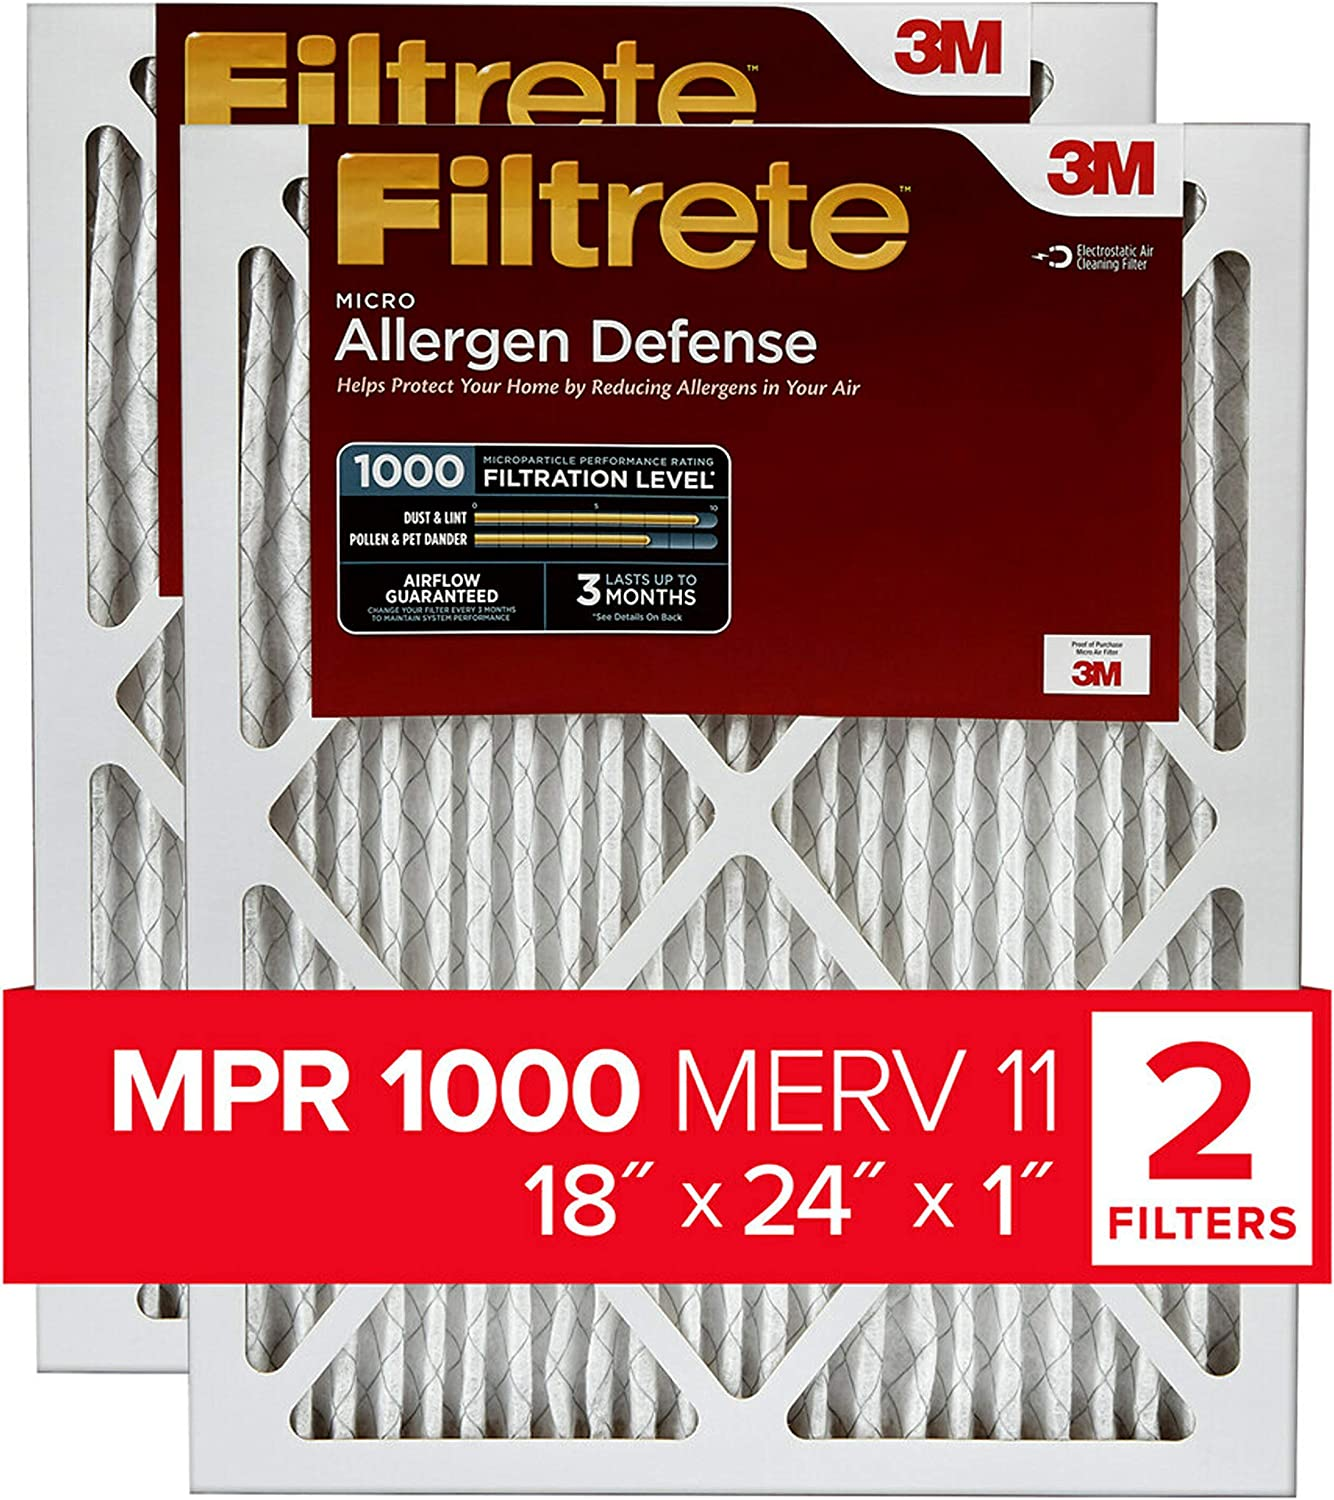 Nordic Pure 18x25x1 MERV 12 Pleated AC Furnace Air Filters 6 Pack